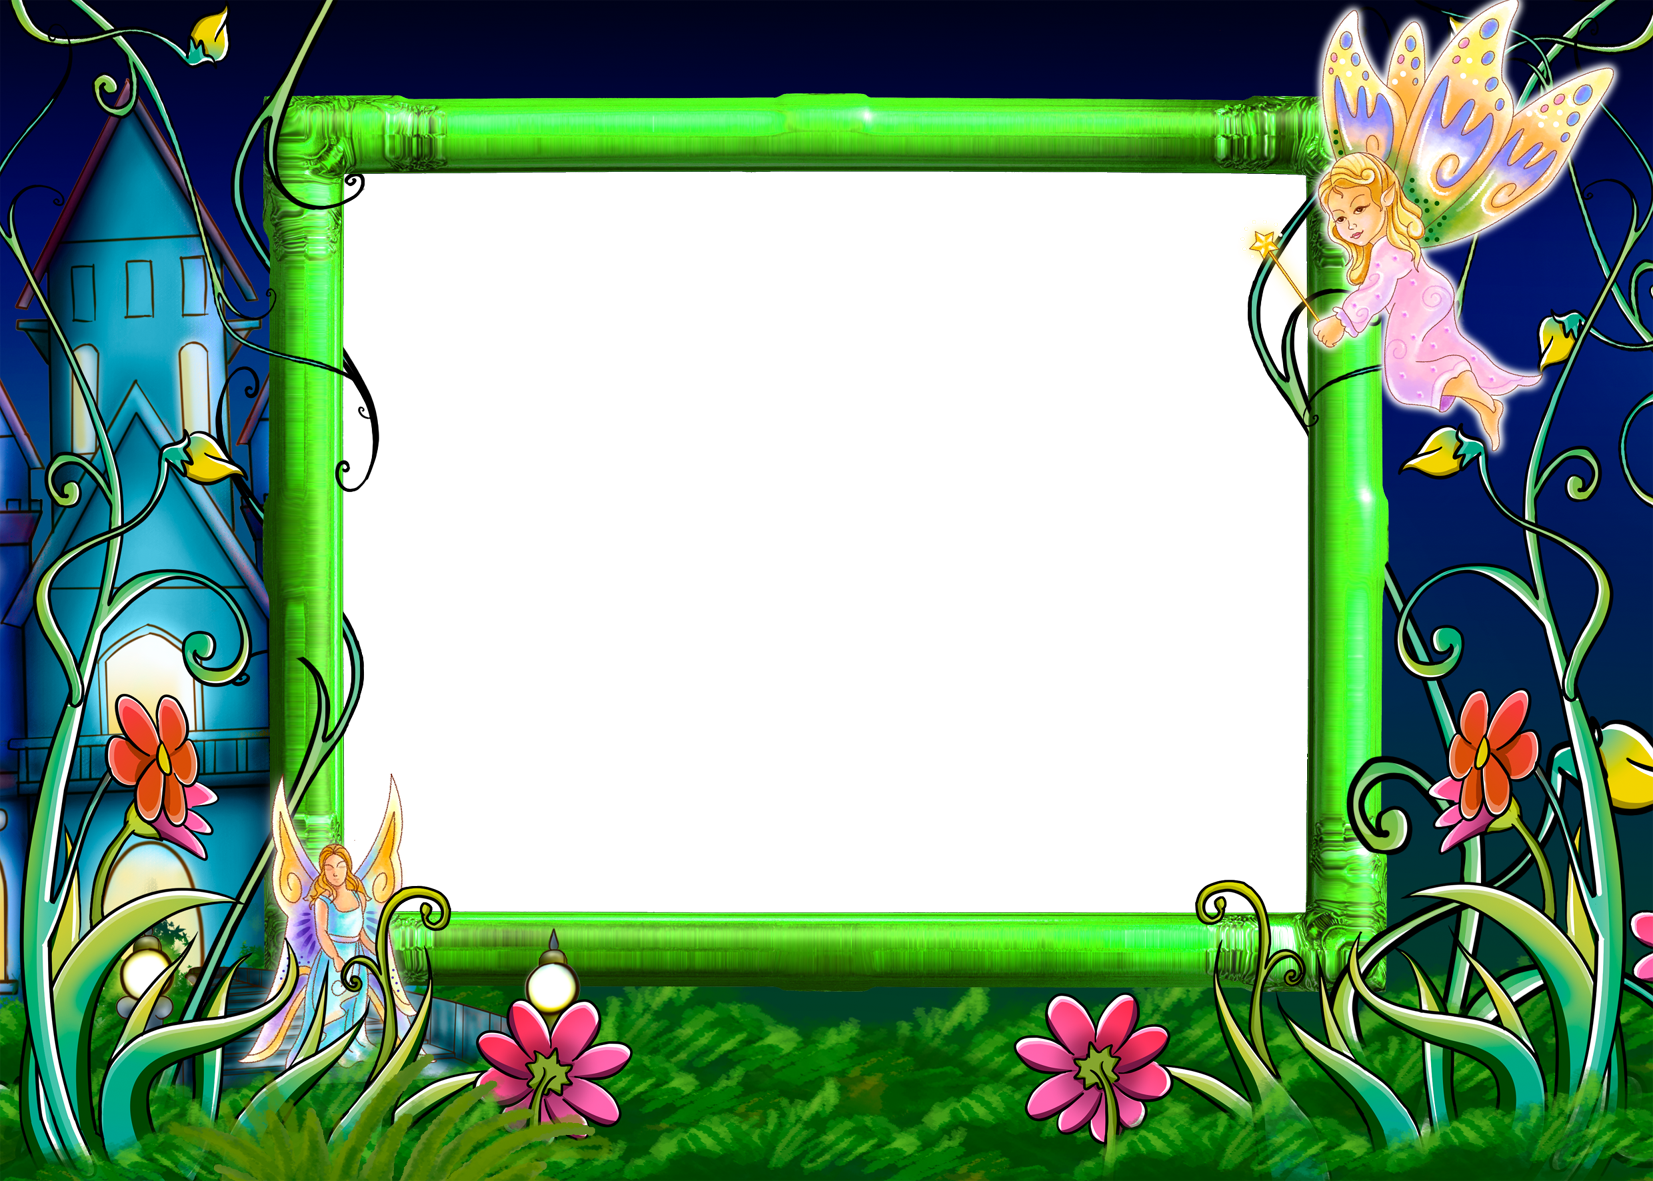 transparent clipart image fairy tale photo frame #28652